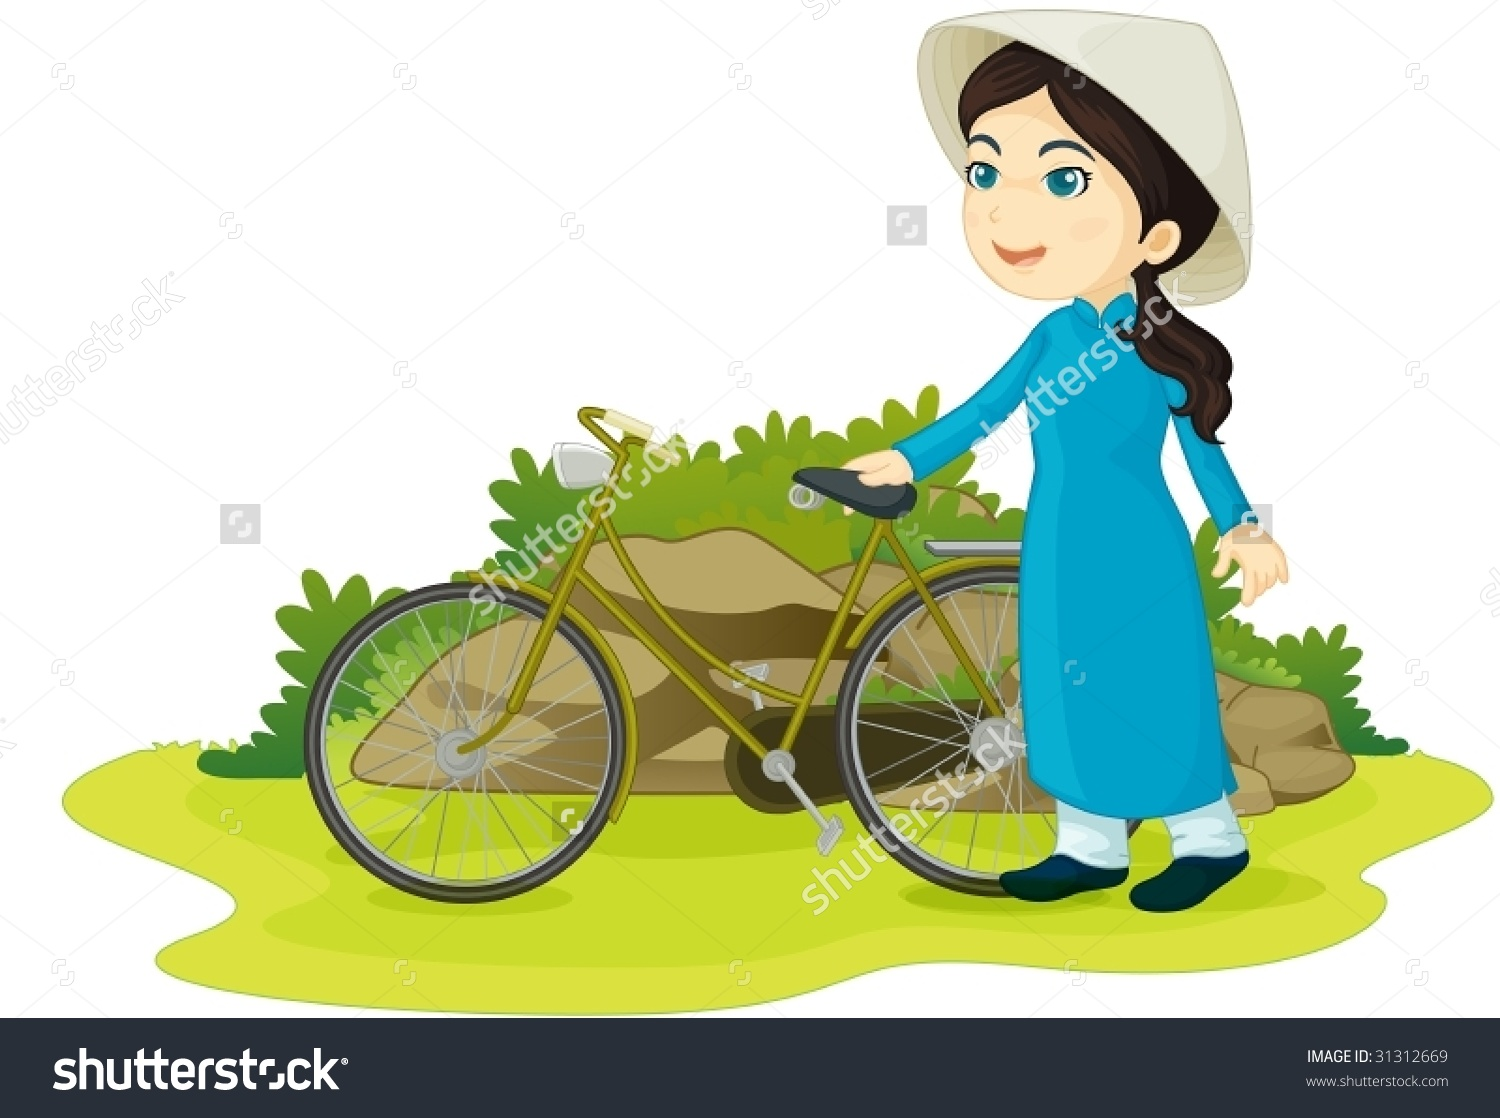 Illustration Girl Bicycle Stock Vector 31312669.